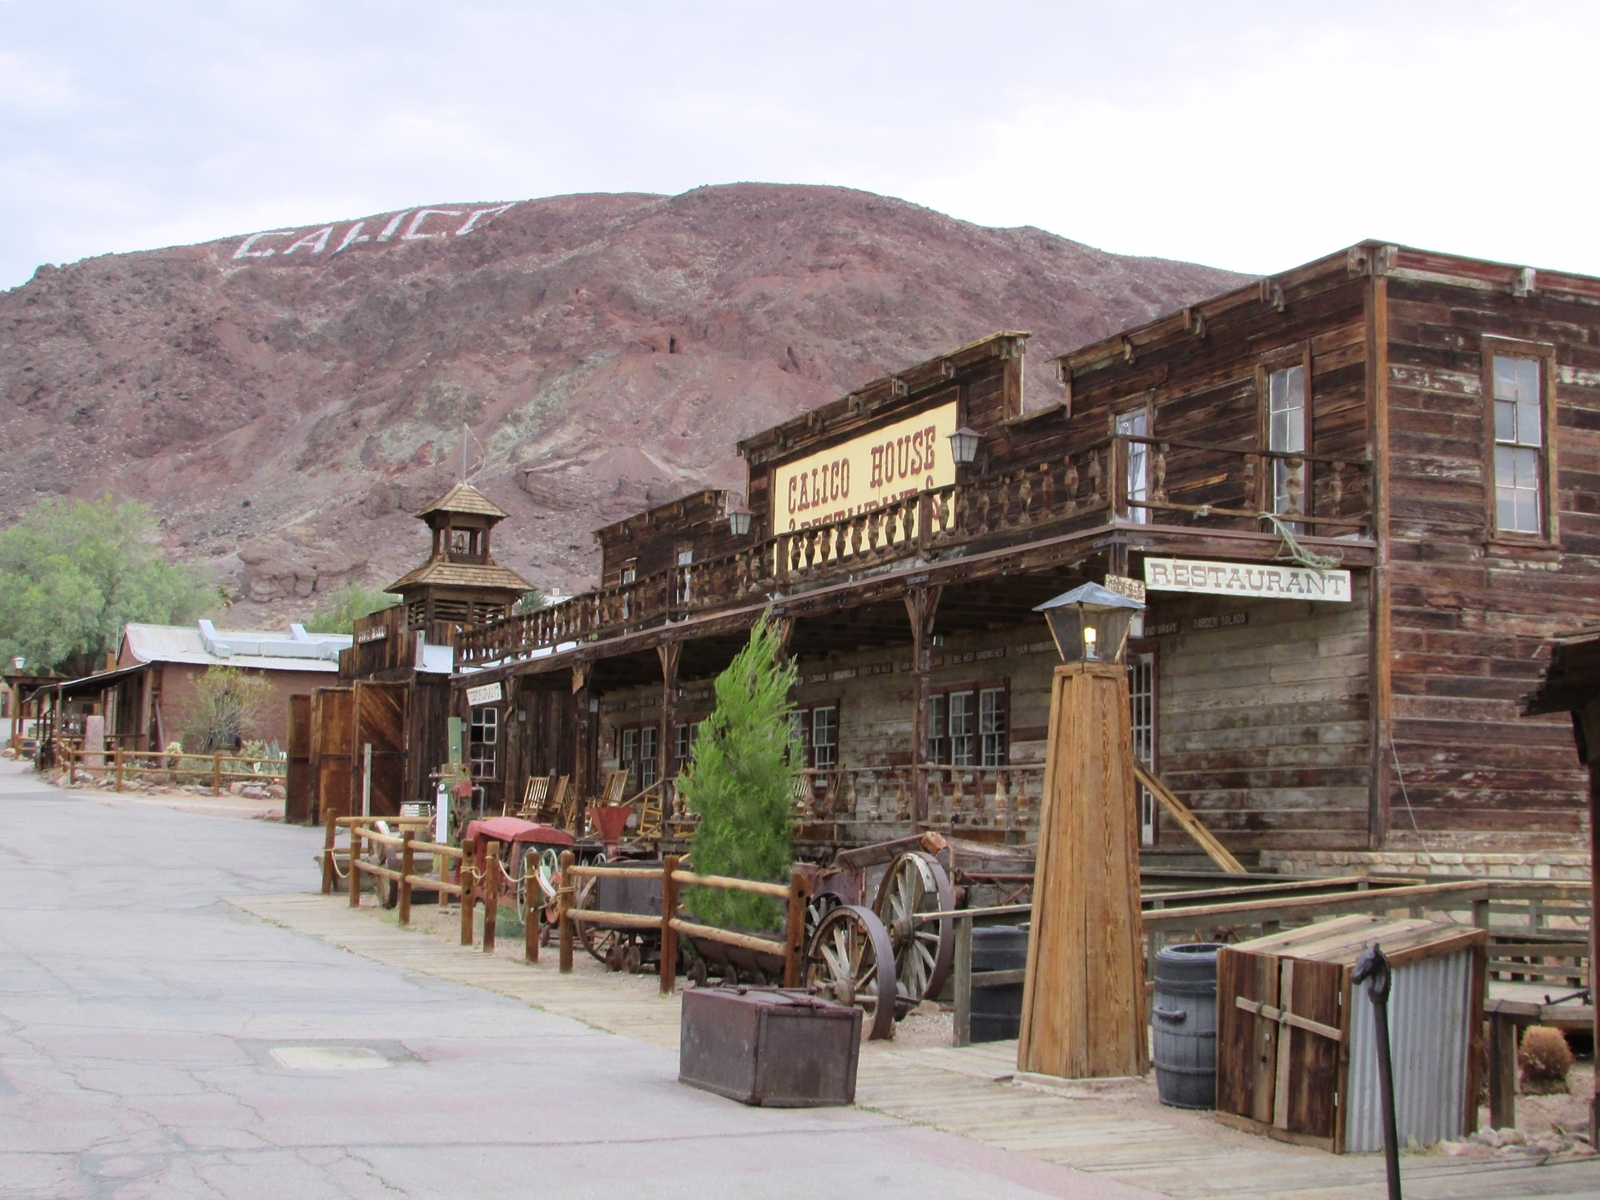 Calico Ghost town - usa rundreise - geisterstadt in der Mojave Wüste - Eingang - Calico House - Fashionladyloves by Tamara Wagner Travelblog